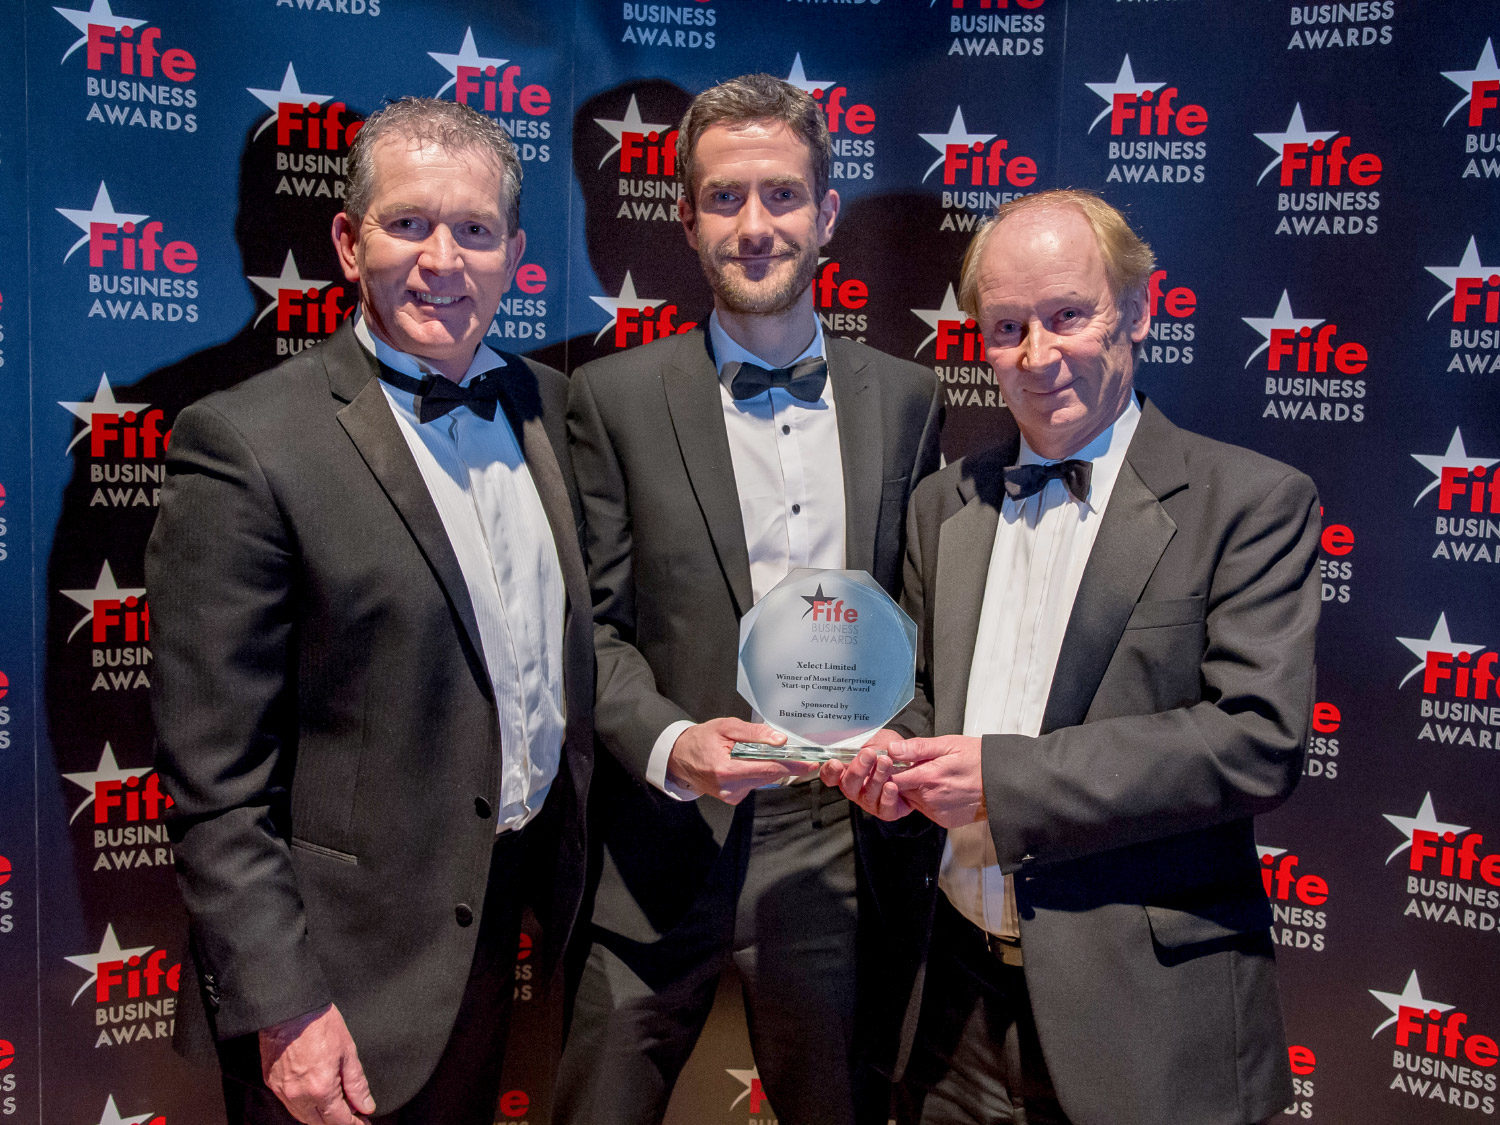 Xelect Win Most Enterprising Start-Up Award